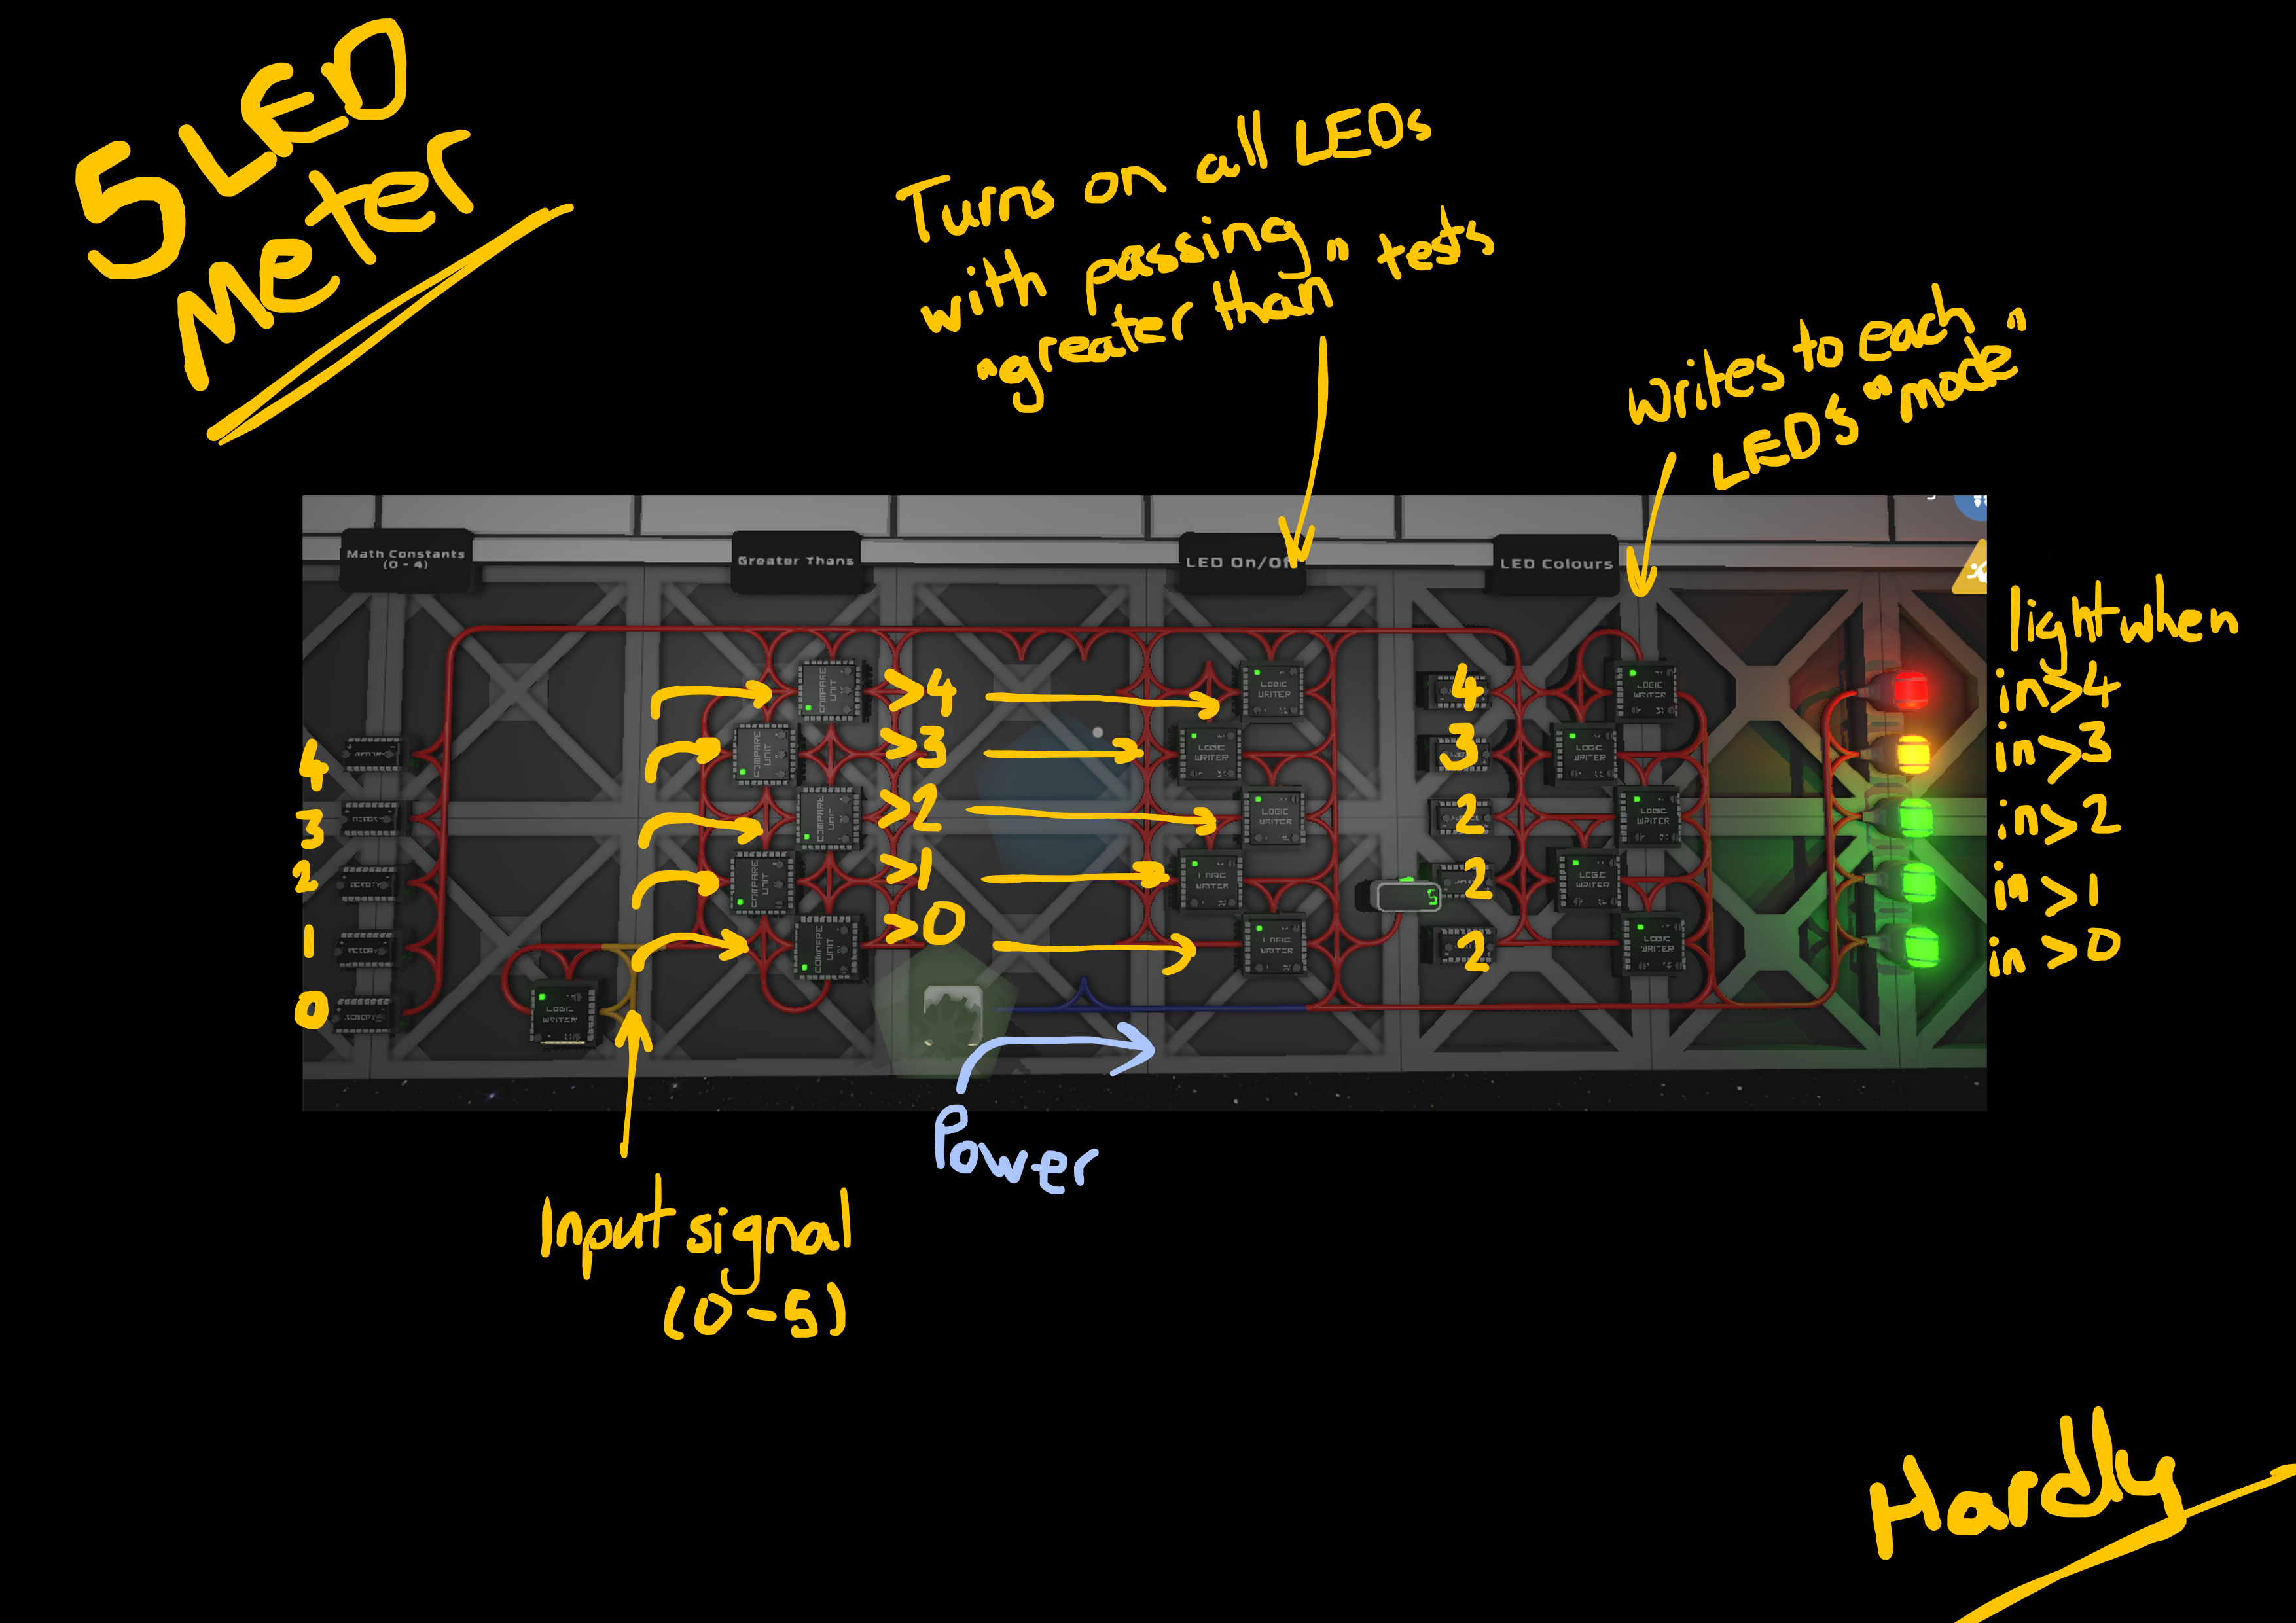 Steam Community Guide Slightly Less Simple Logic Units Circuit As A Bonus Showcase When I Did This The New Low Profile Can Be Hidden Beneath Walls And Gratings Was In Beta So You Expect To